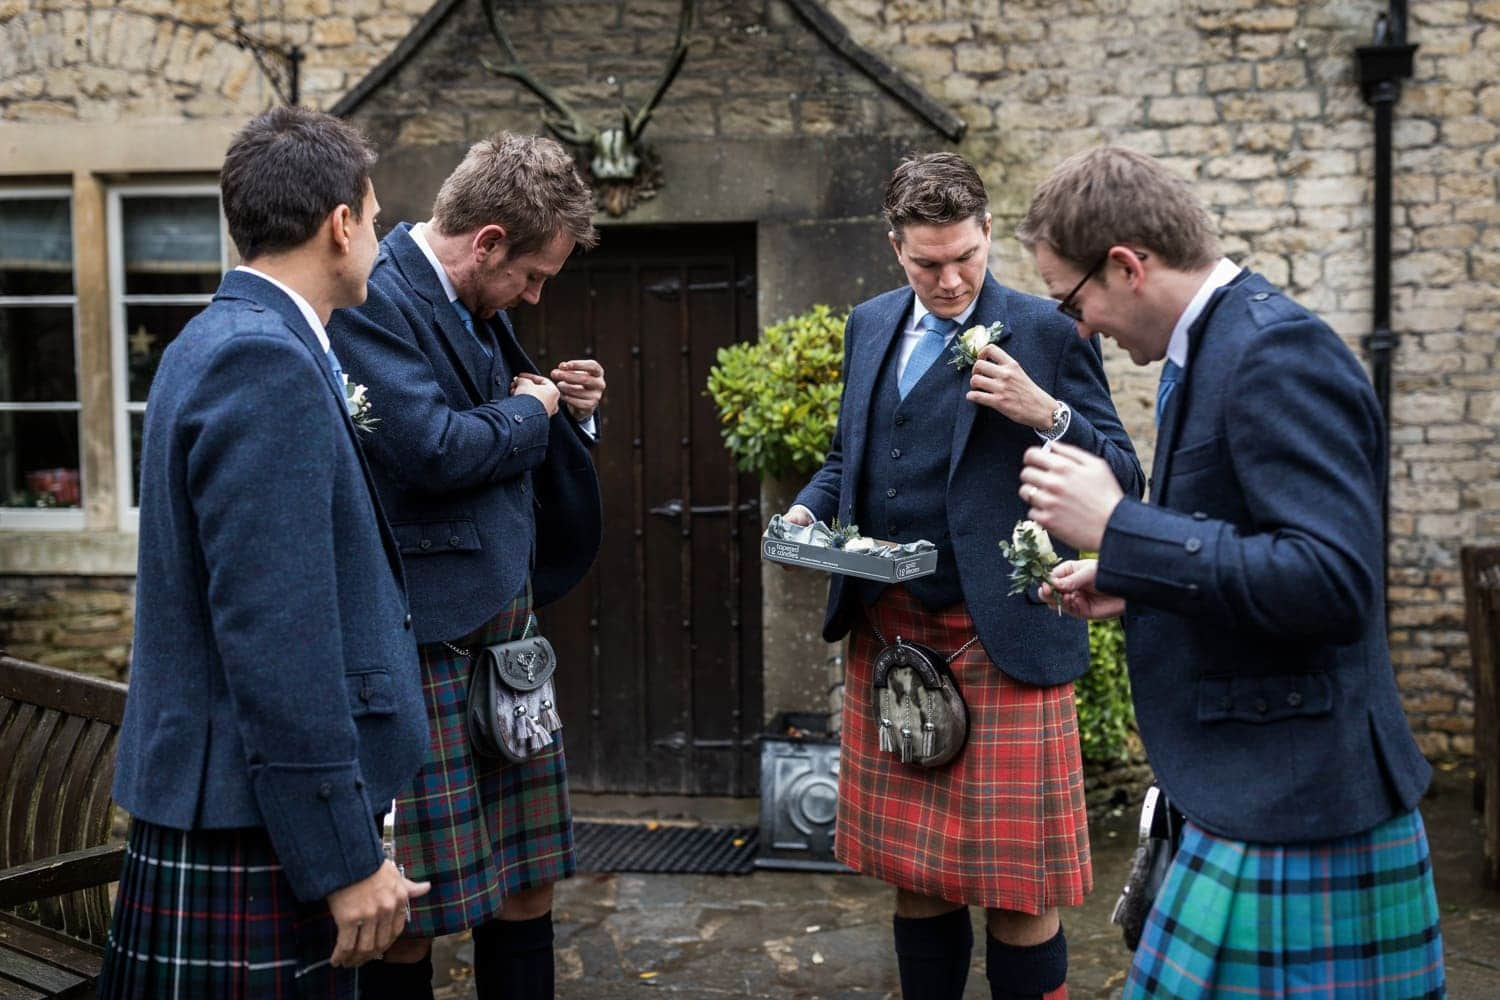 Groom & ushers before winter wedding at Lost Orangery in the Cotswolds